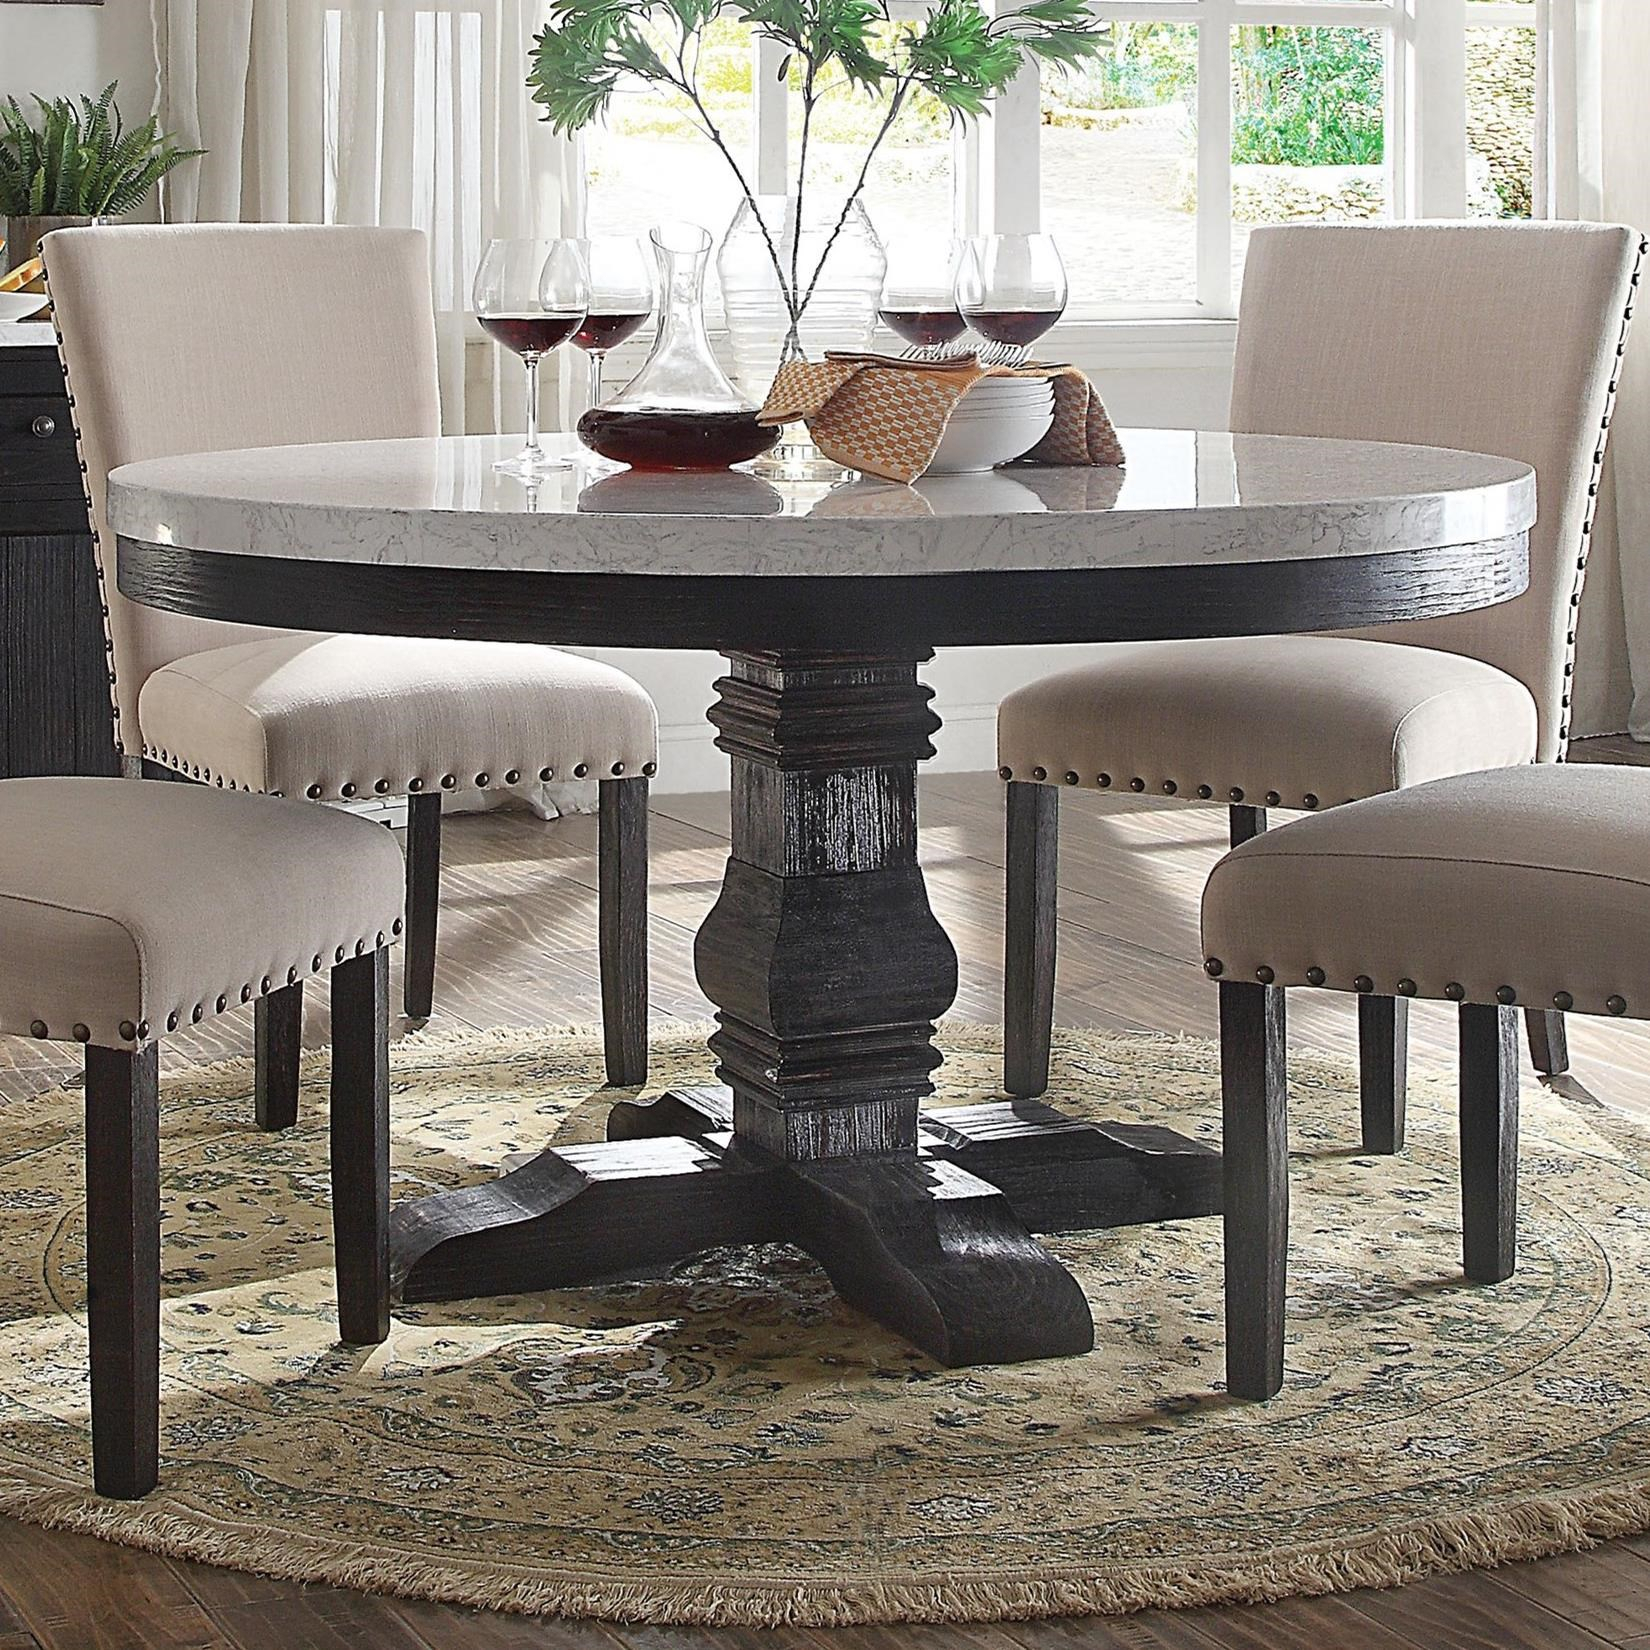 Acme Furniture Nolan 72845 Round Pedestal Dining Table With With Regard To Most Recently Released Nolan Round Pedestal Dining Tables (View 5 of 25)